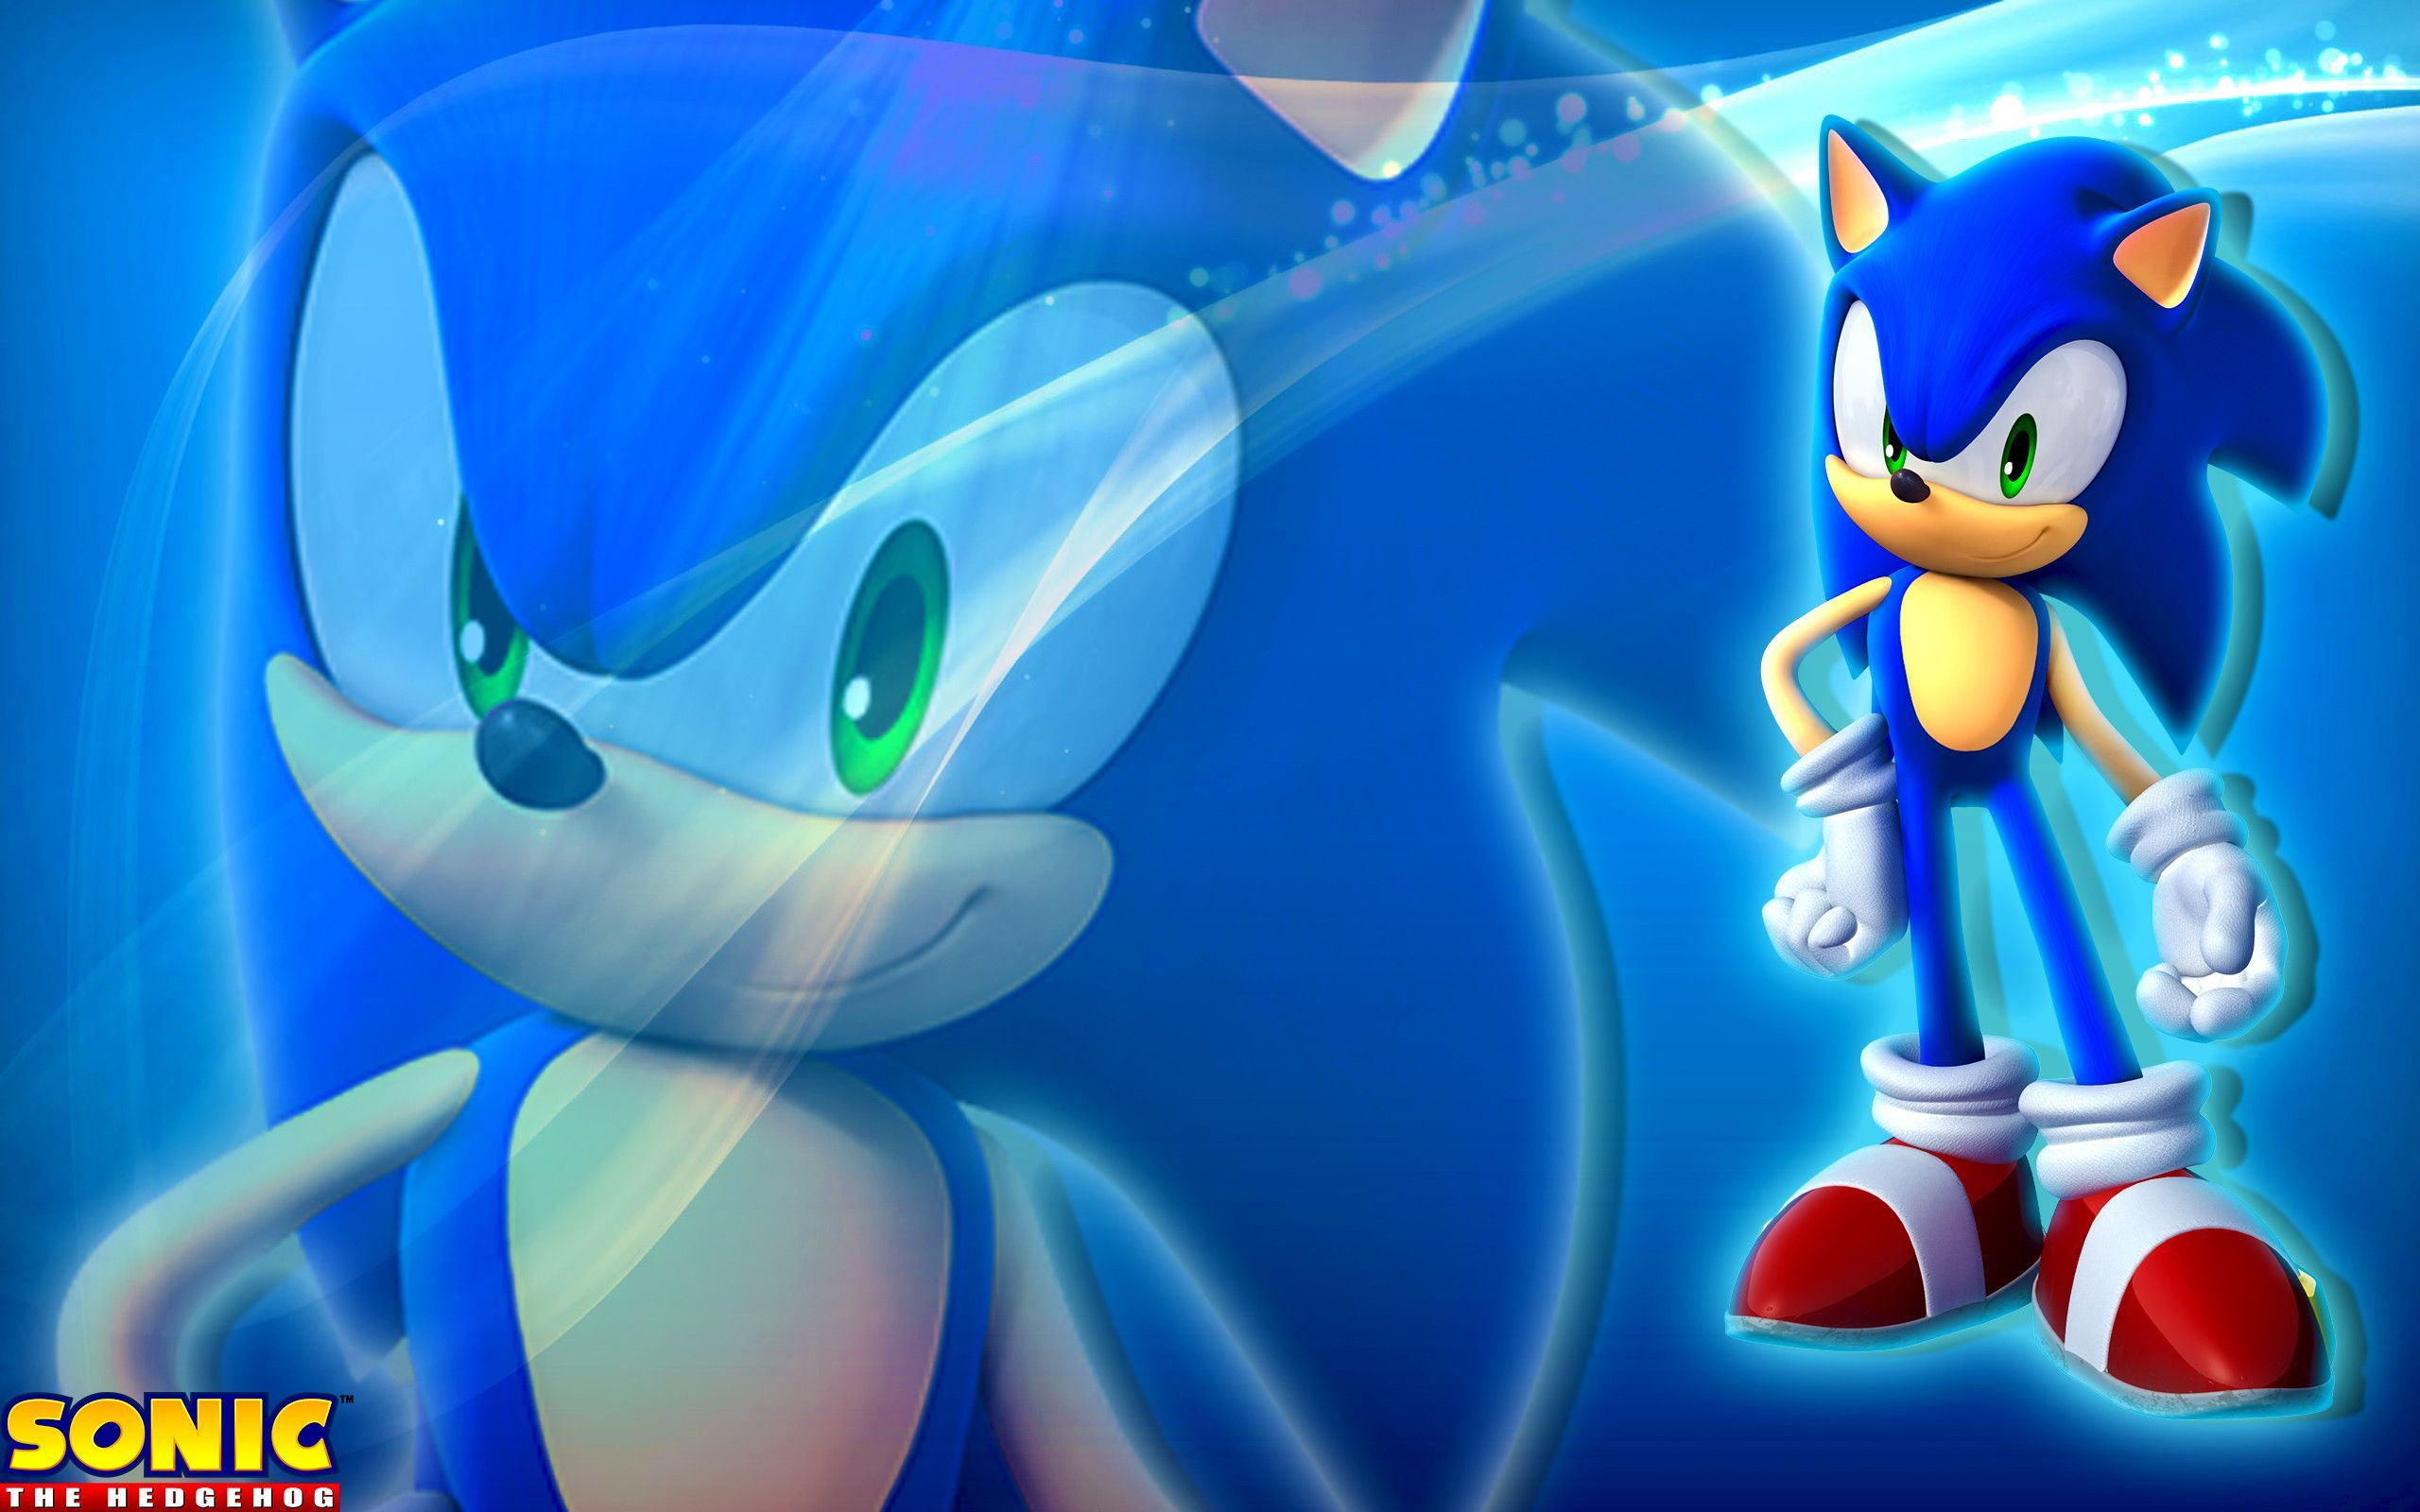 Wallpaper Of Sonic Posted By Ethan Peltier